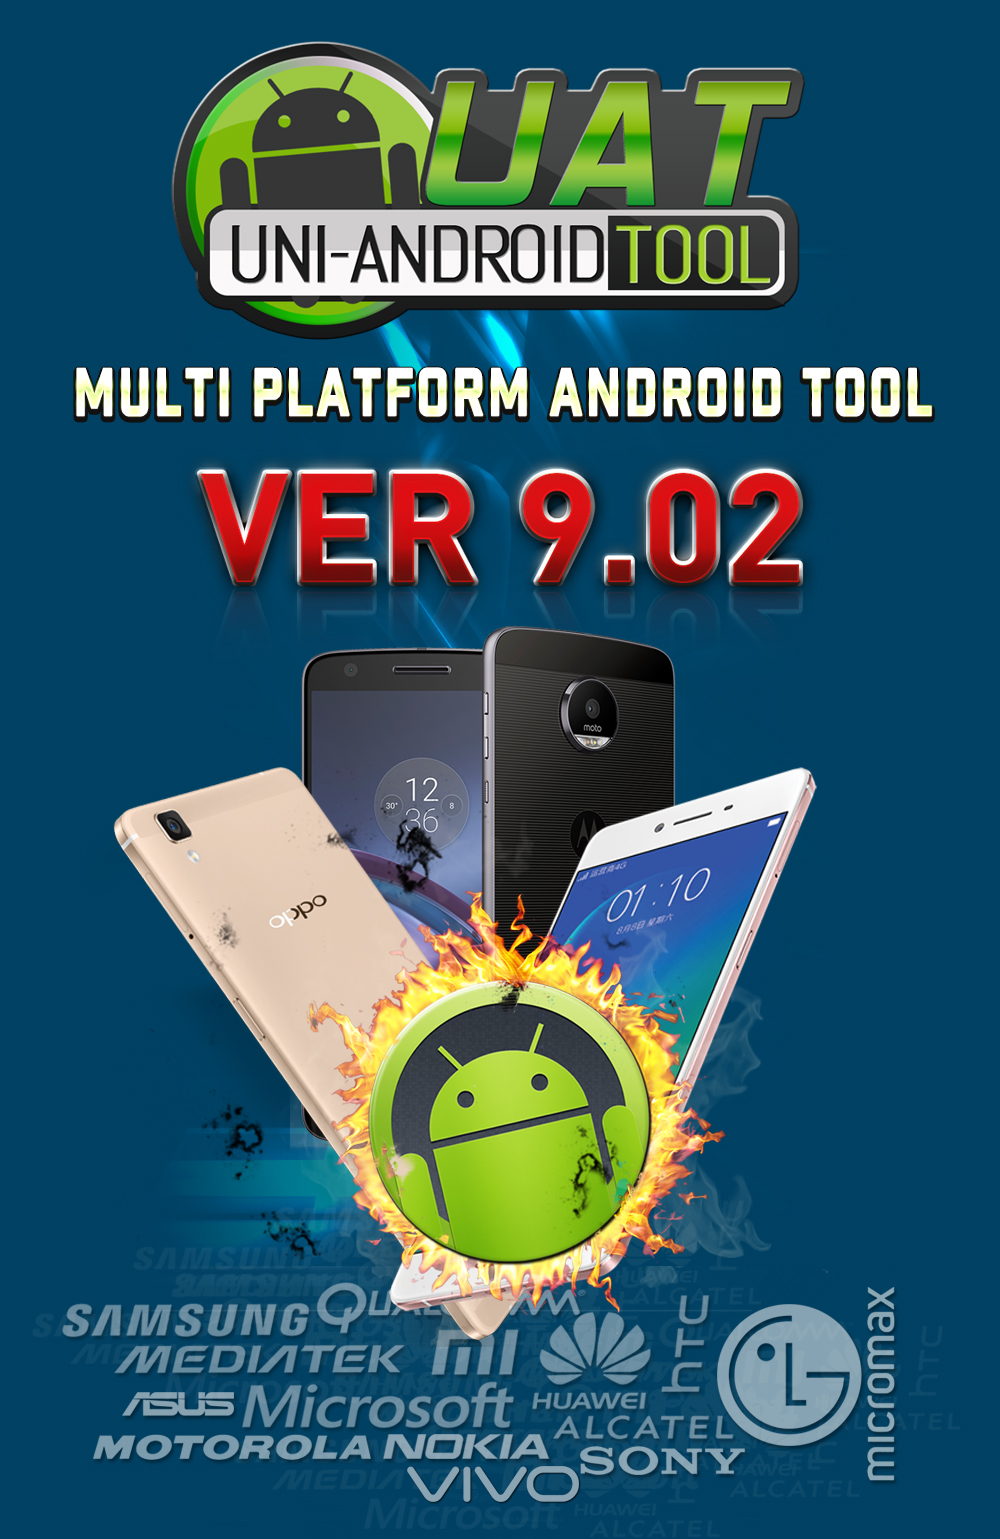 Uni-Android Tool [UAT] Version 9.02 Released [25/11/2017] CoyeM6SmGf